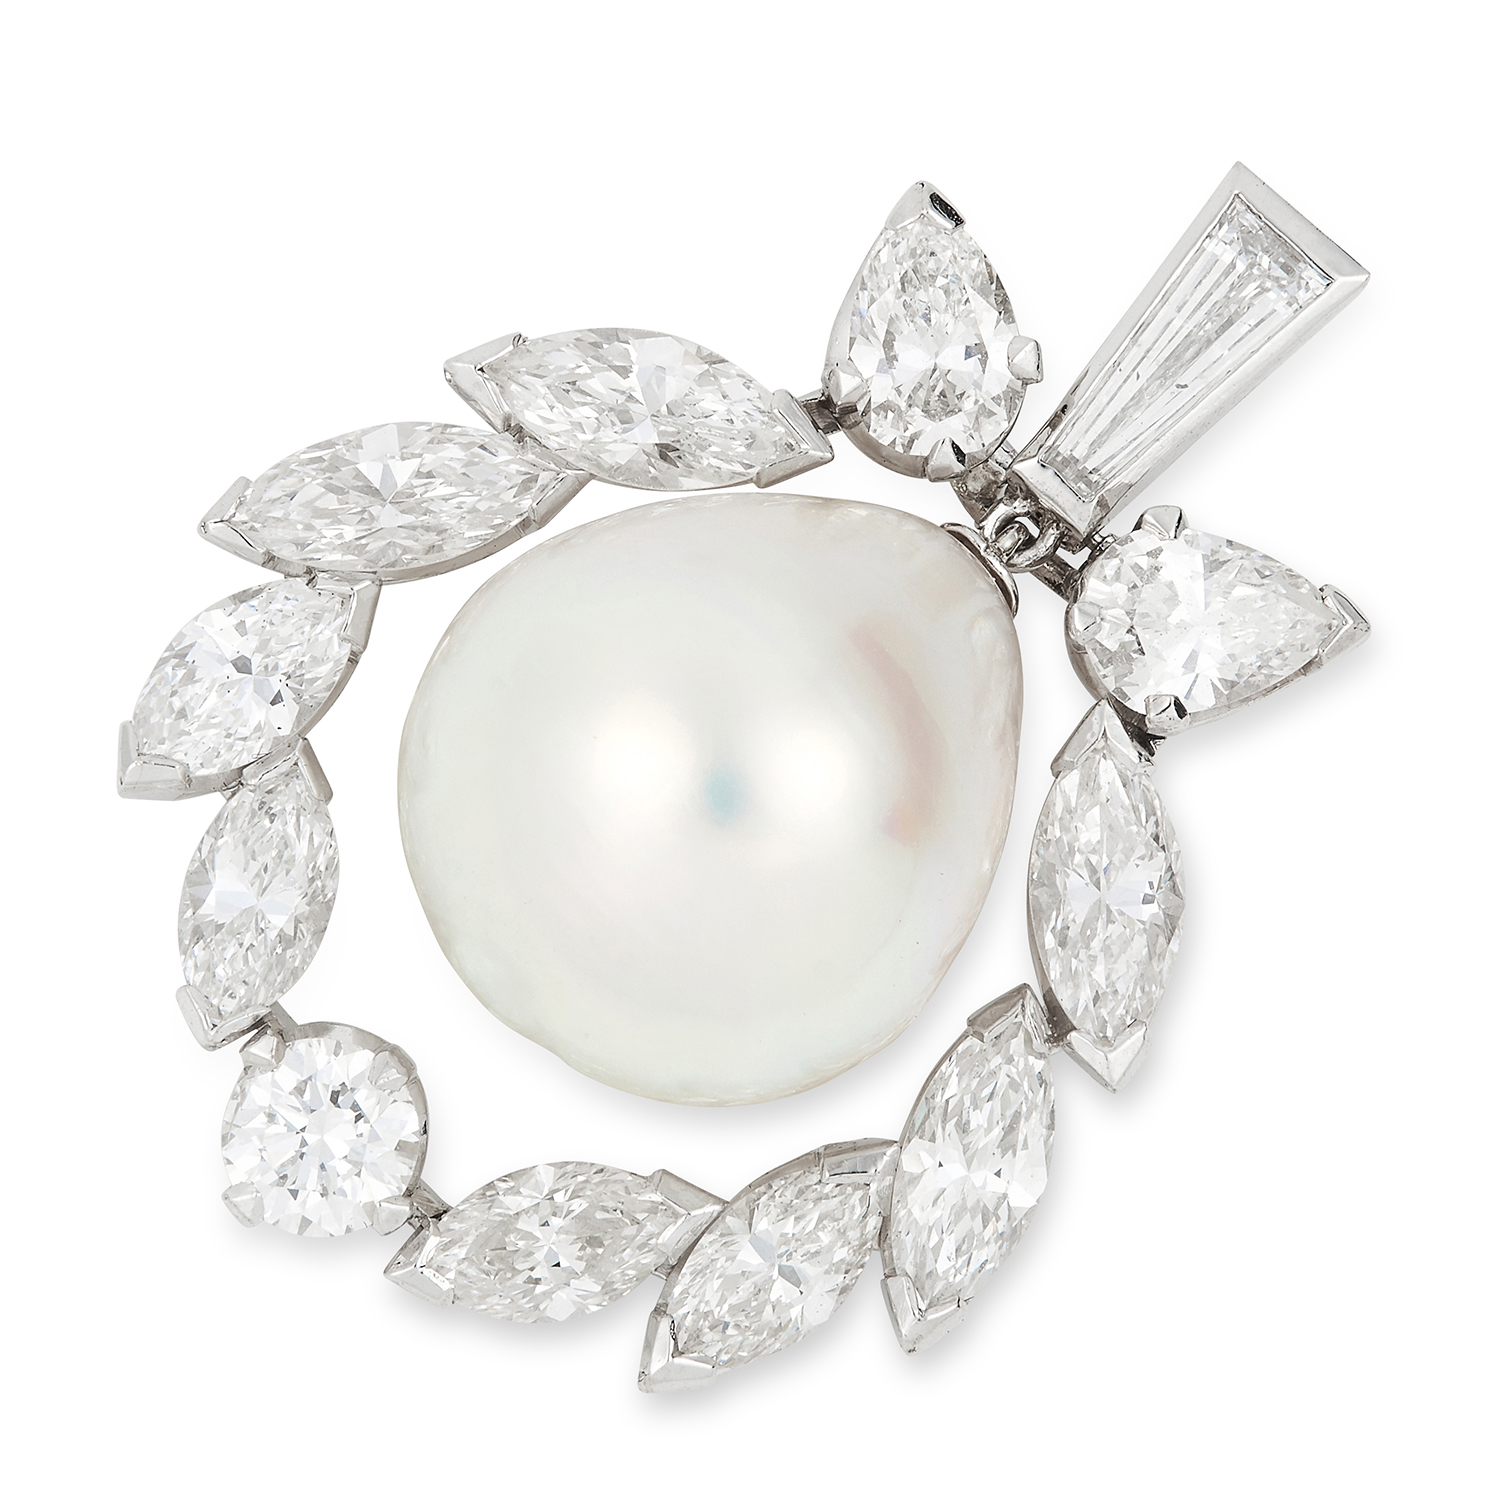 Los 1 - NATURAL PEARL AND DIAMOND PENDANT set with a pearl of 14.4mm encircled by a halo of round, pear,